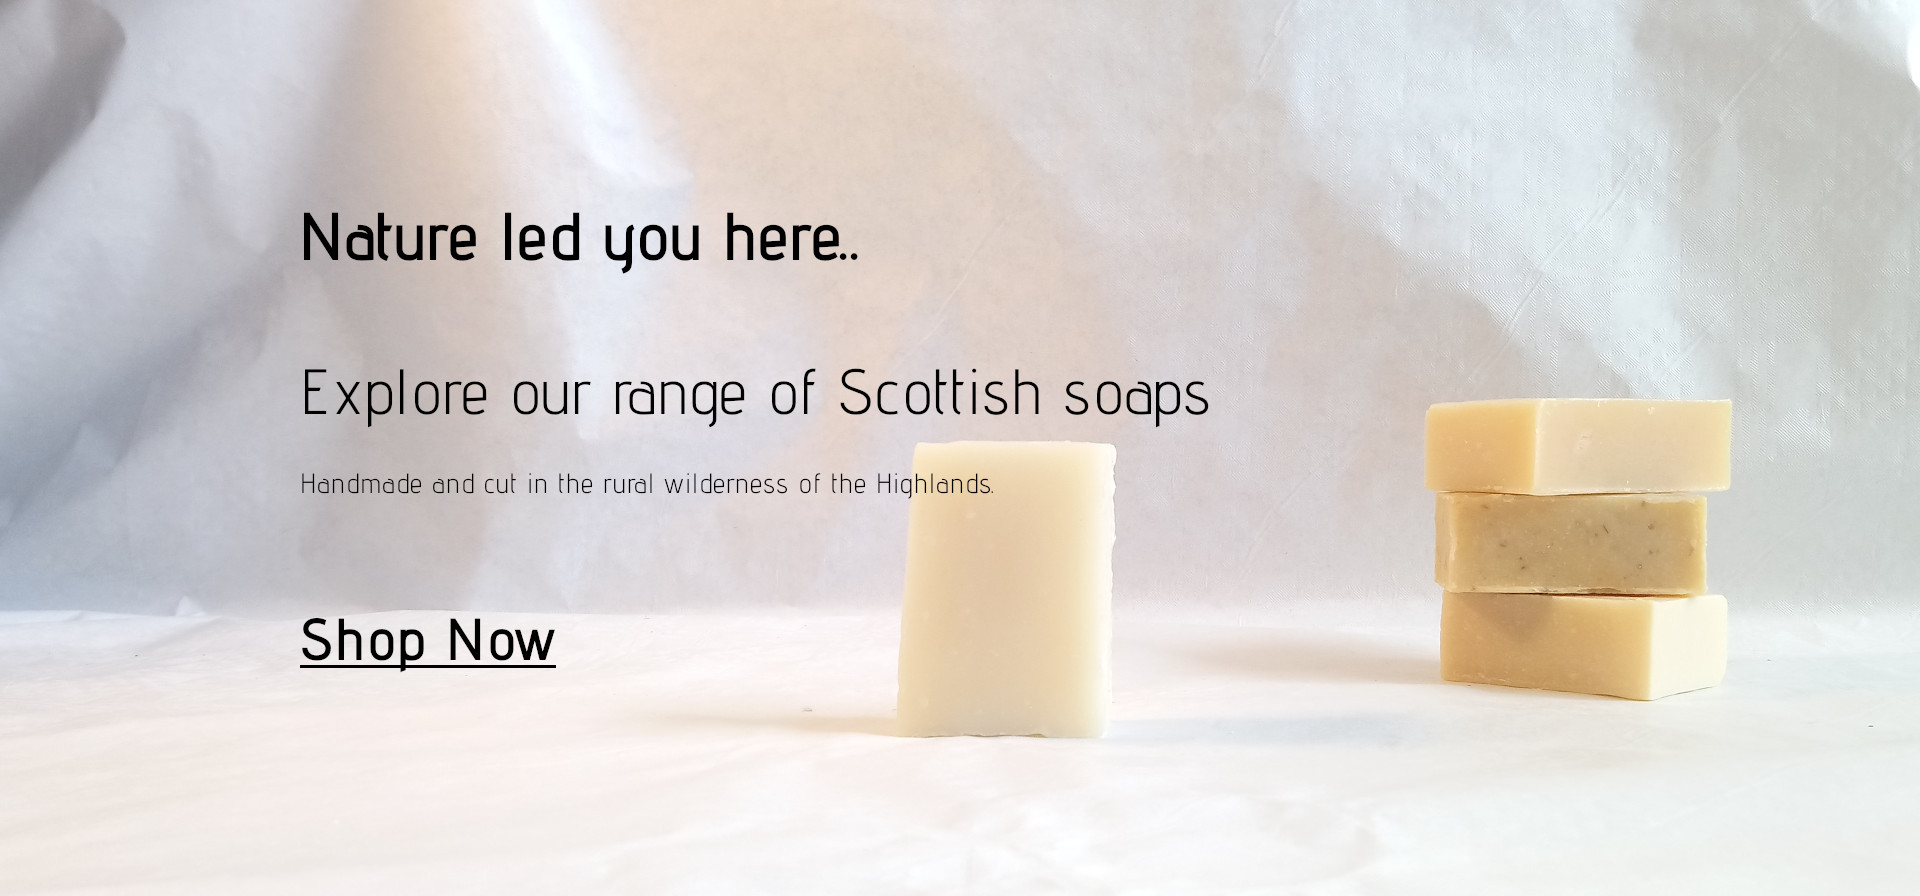 Natural fragrance-free hypoallergenic soap for sensitive skin Excellent choice, hypoallergenic and natural fragrance-free soap for sensitive skin types fine Oats a mild exfoliant results in renewed and polished skin